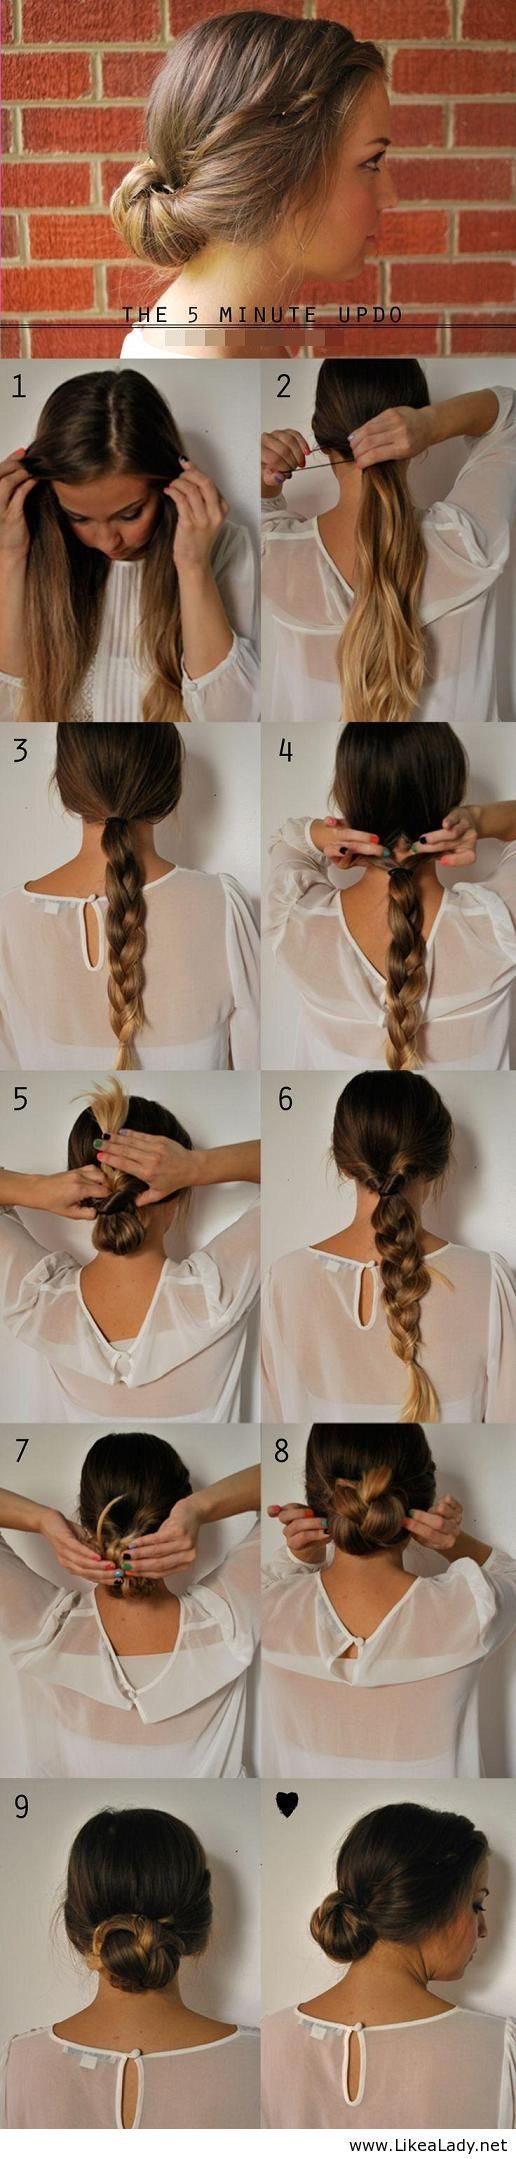 The 5 minute updo